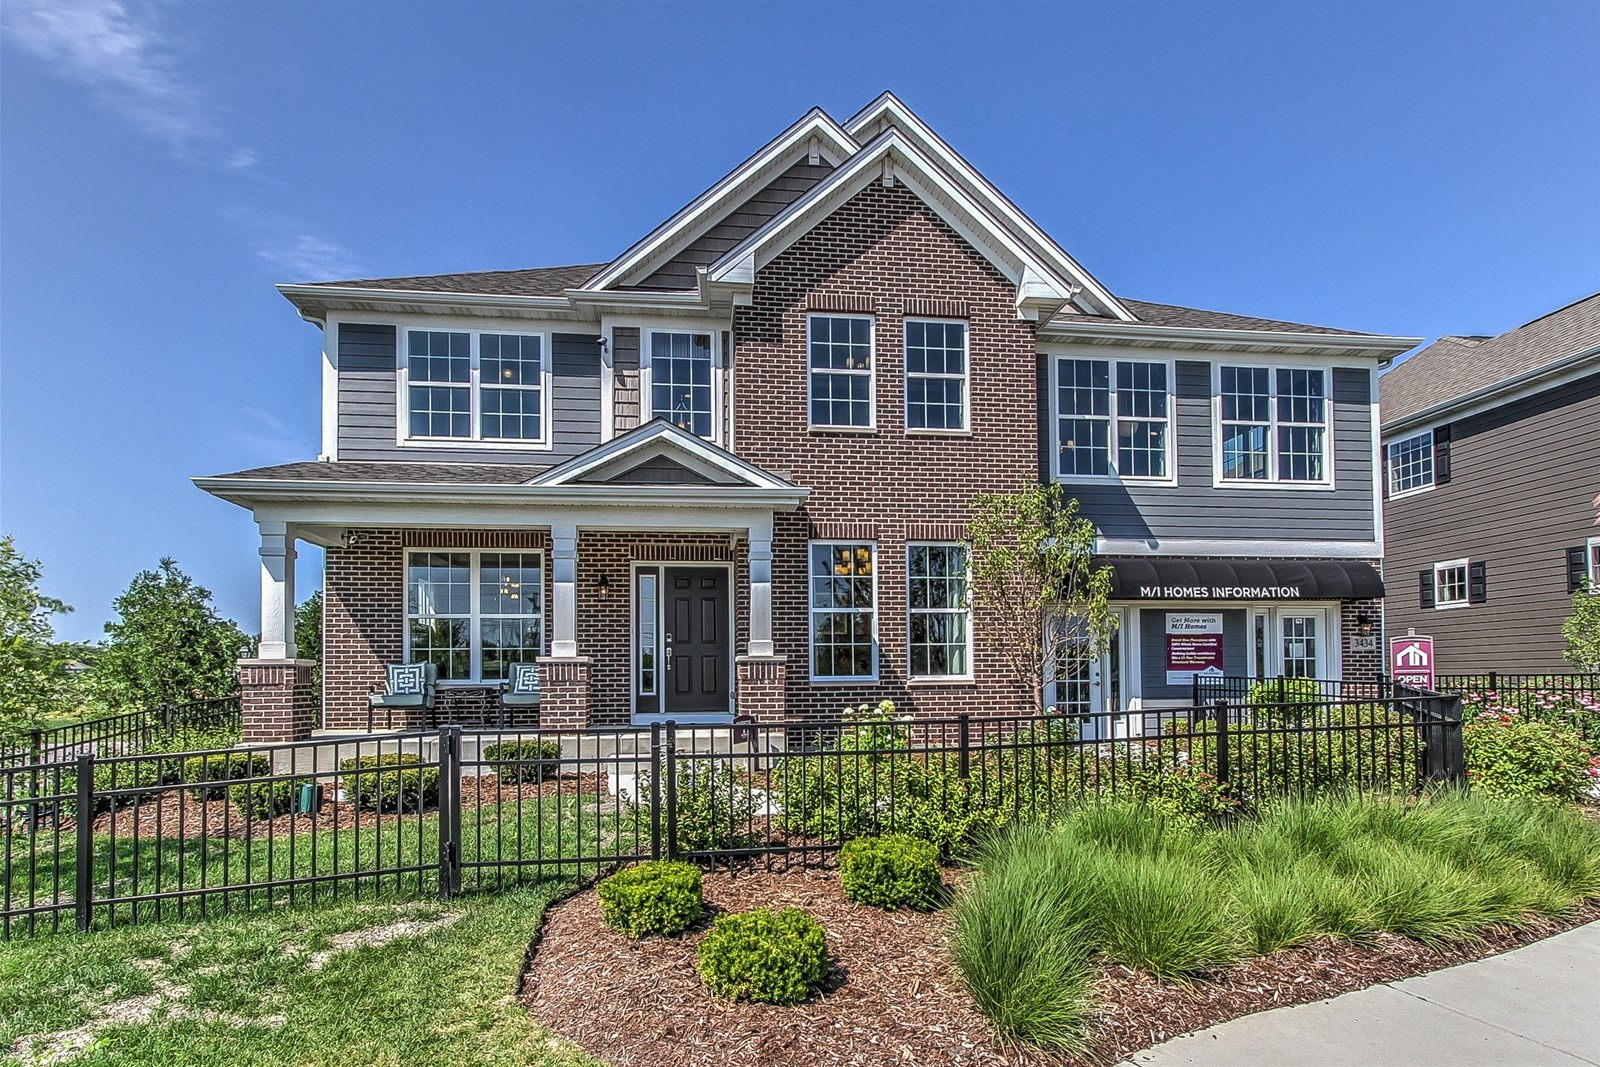 Bergman Pointe.ashx?mw=1280&hash=A463253EFDC6F555C10E8436489EEB027FCD1C5E bergman pointe homes for sale in hoffman estates, il m i homes  at fashall.co